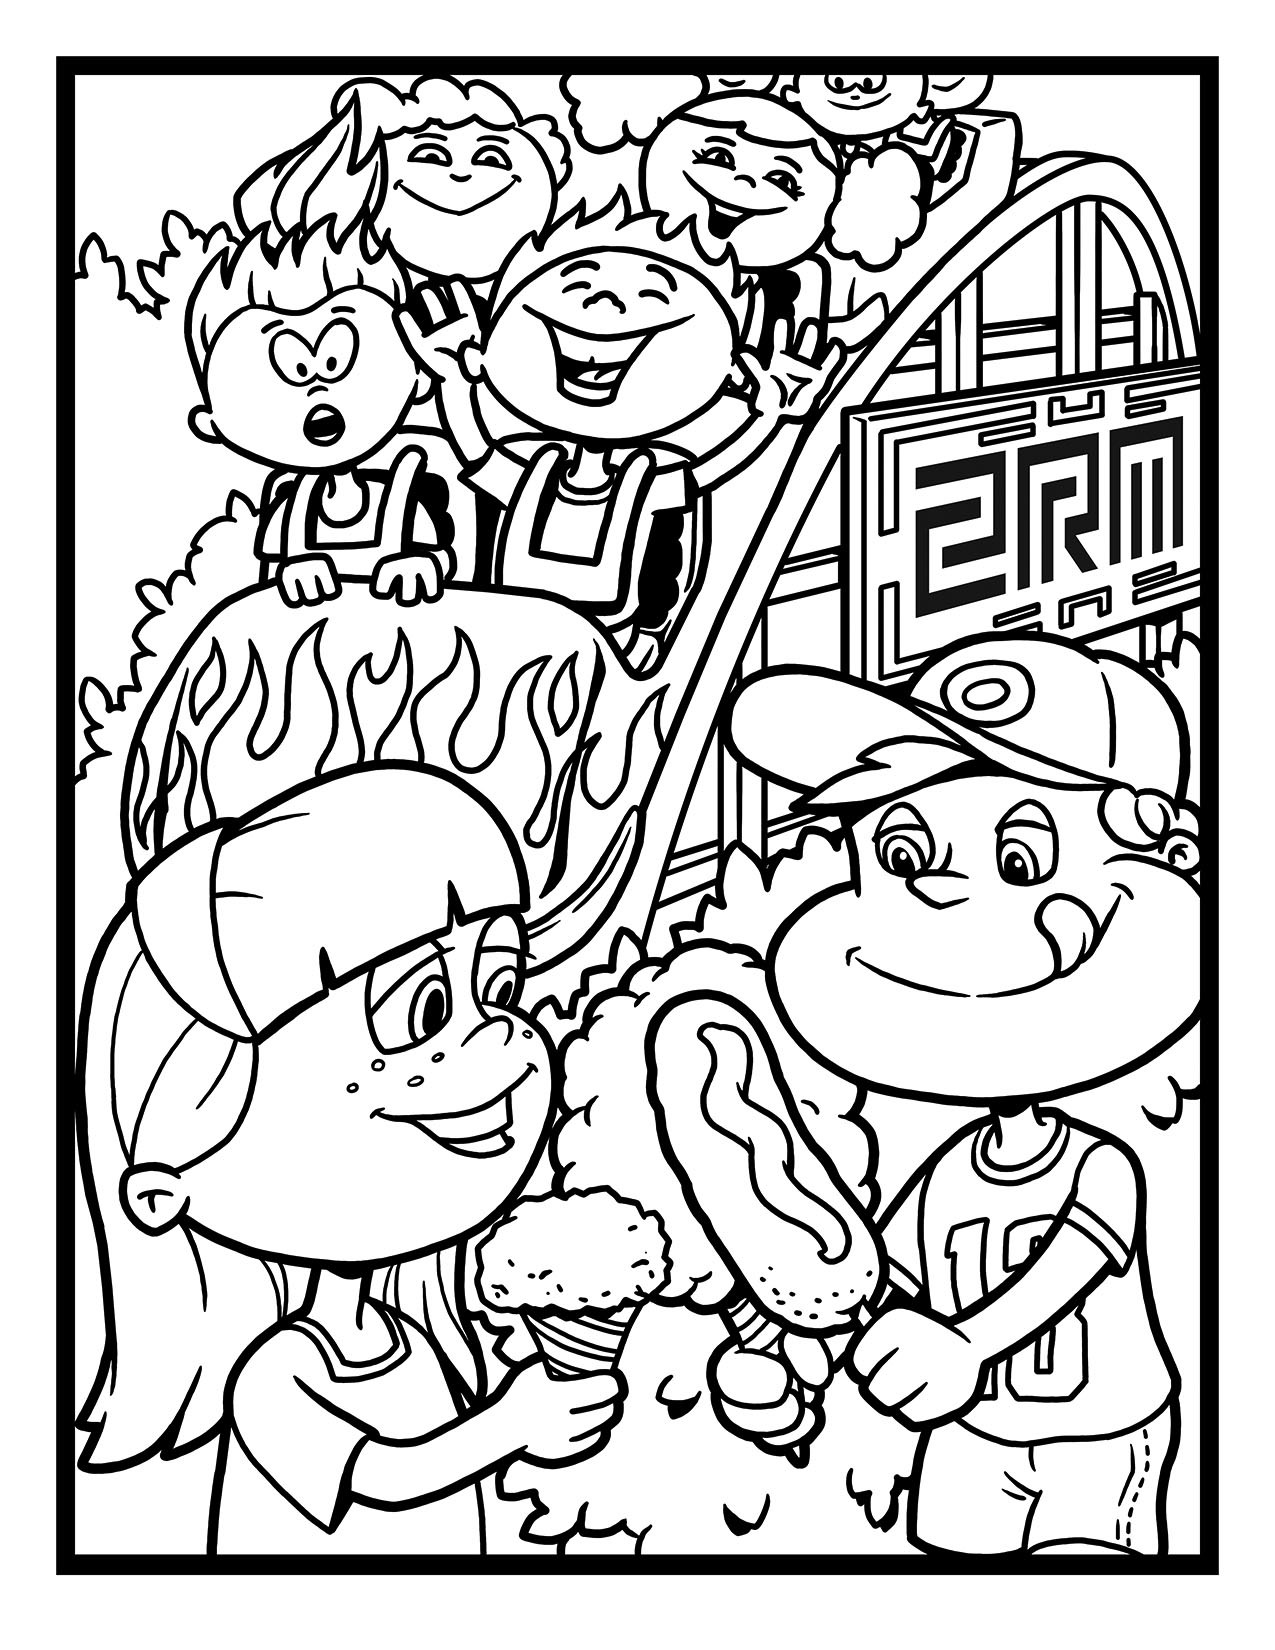 Two Rivers Marketing Coaster Coloring Page